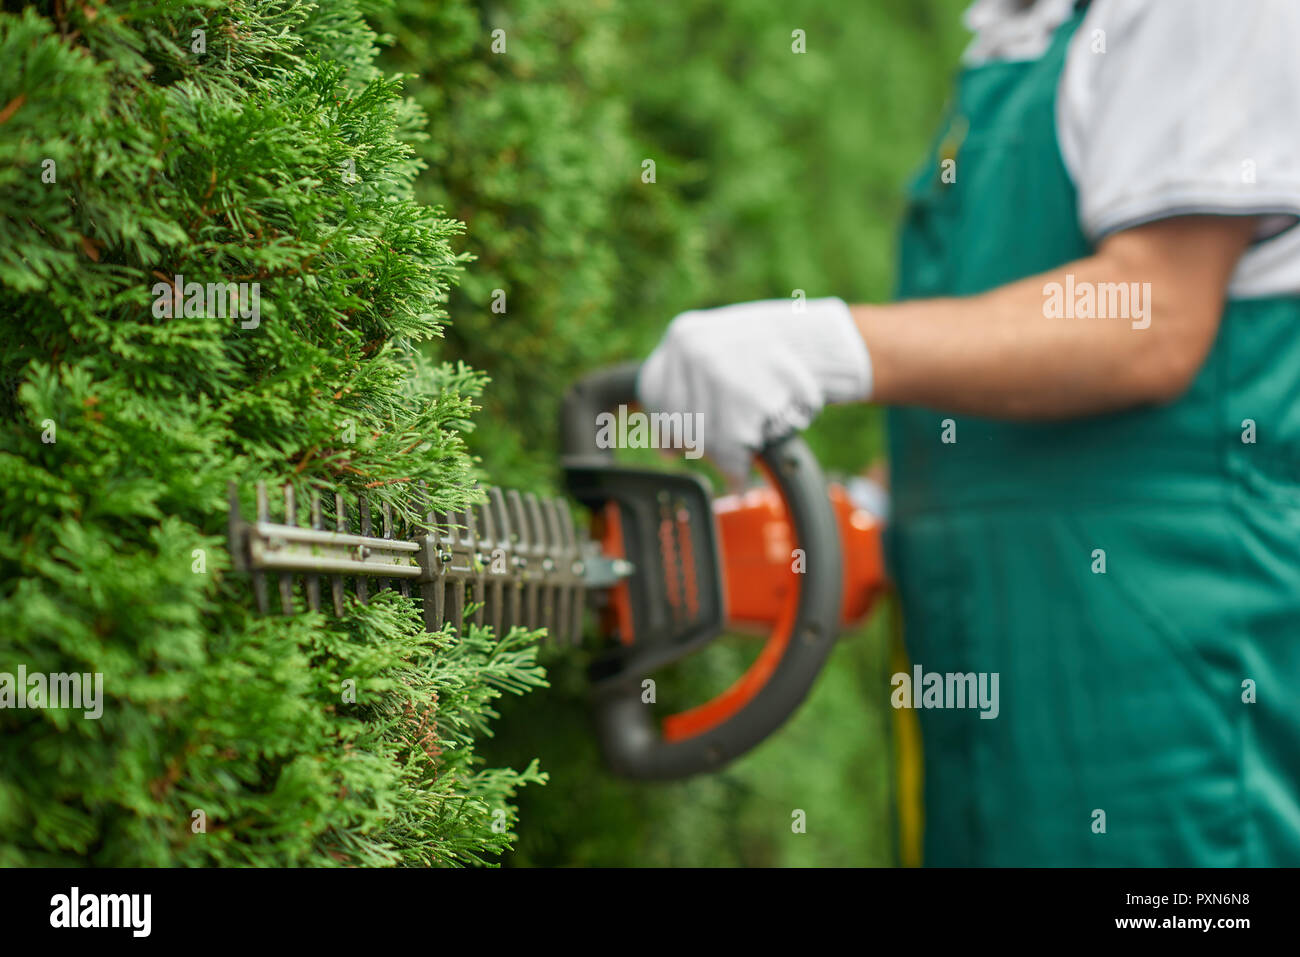 Close up of man hand with hedge trimmer cutting bushes of white cedar to ideal fence. Male gardener, wearing in overalls with protective glove working with professional garden equipment in backyard. - Stock Image